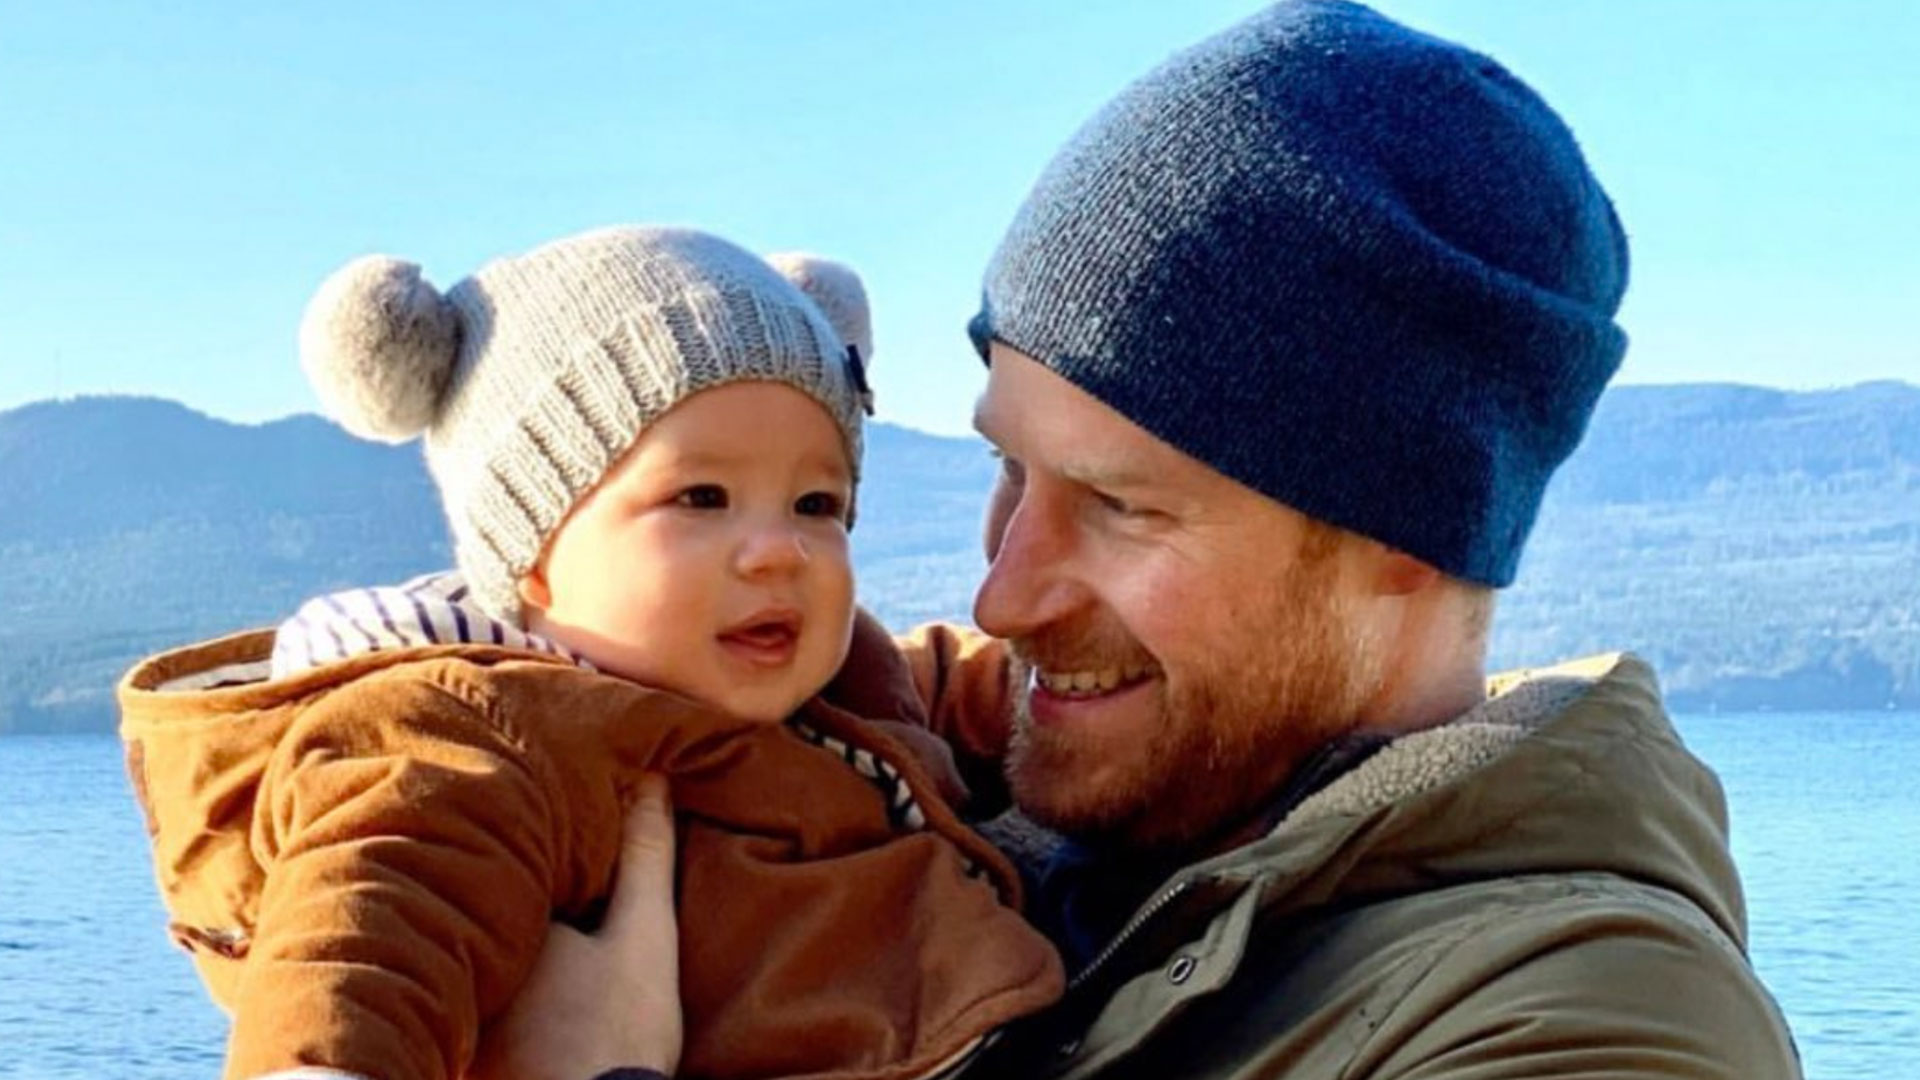 191231 4092355 Prince Harry Grins At Baby Archie In Adorabl.'